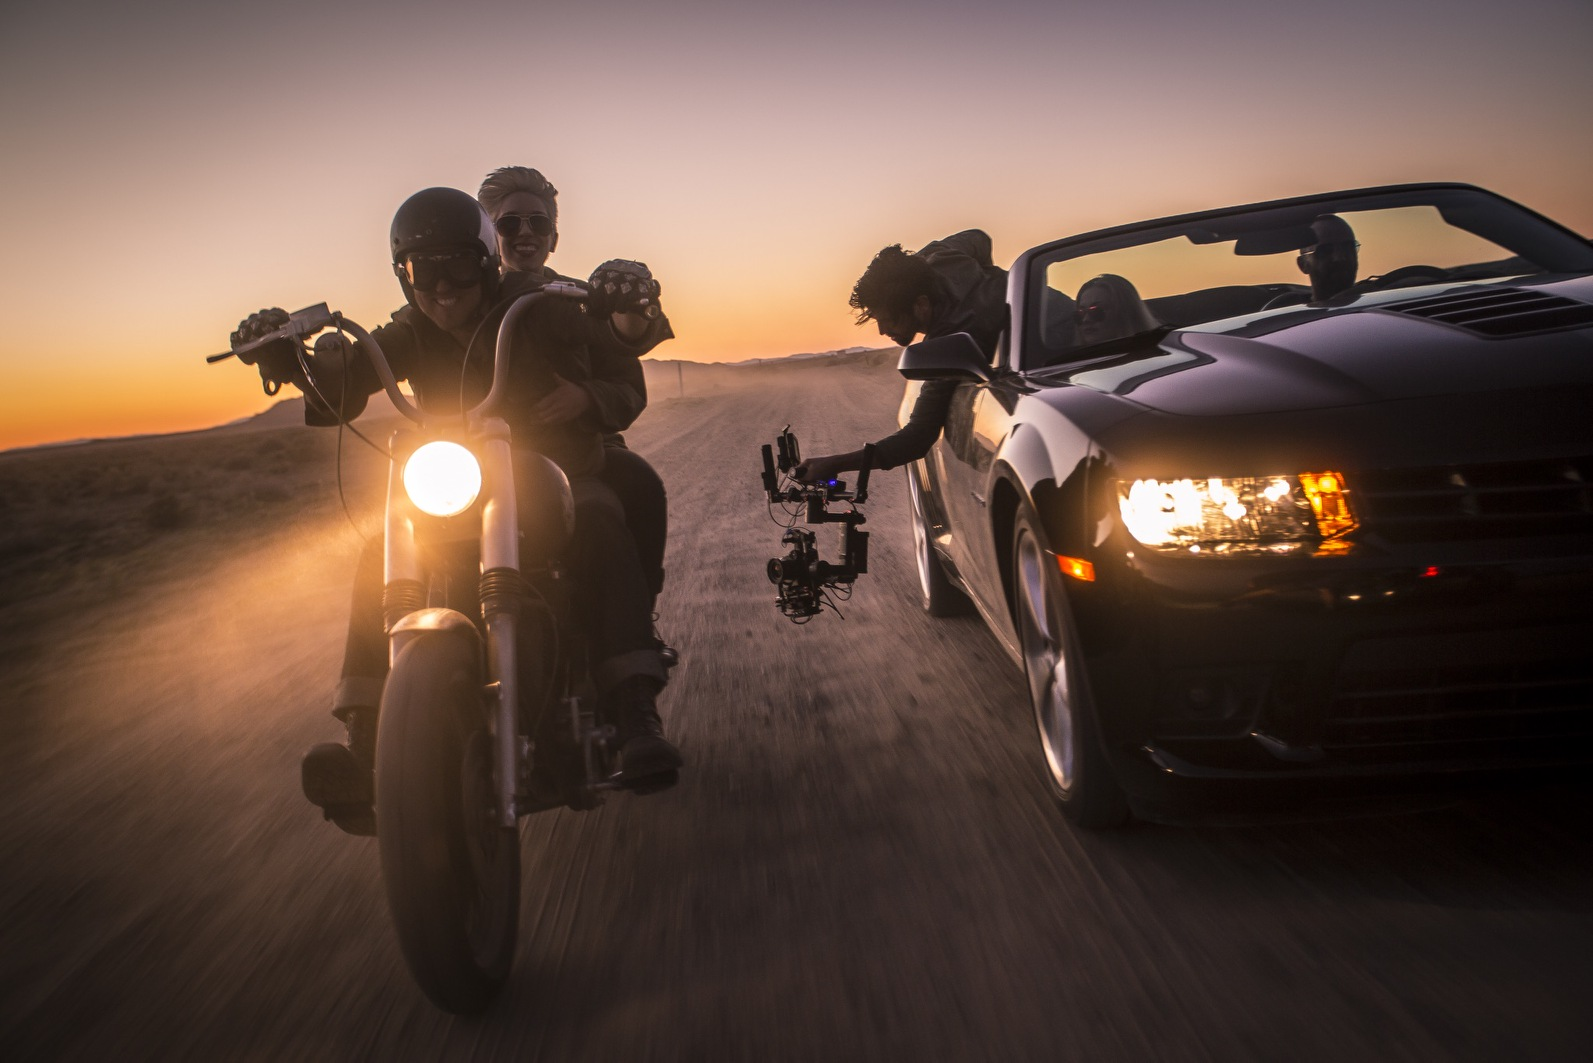 Clint Riding a Custom Motorcycle in DJI Shoot / Photo By Matt Roe